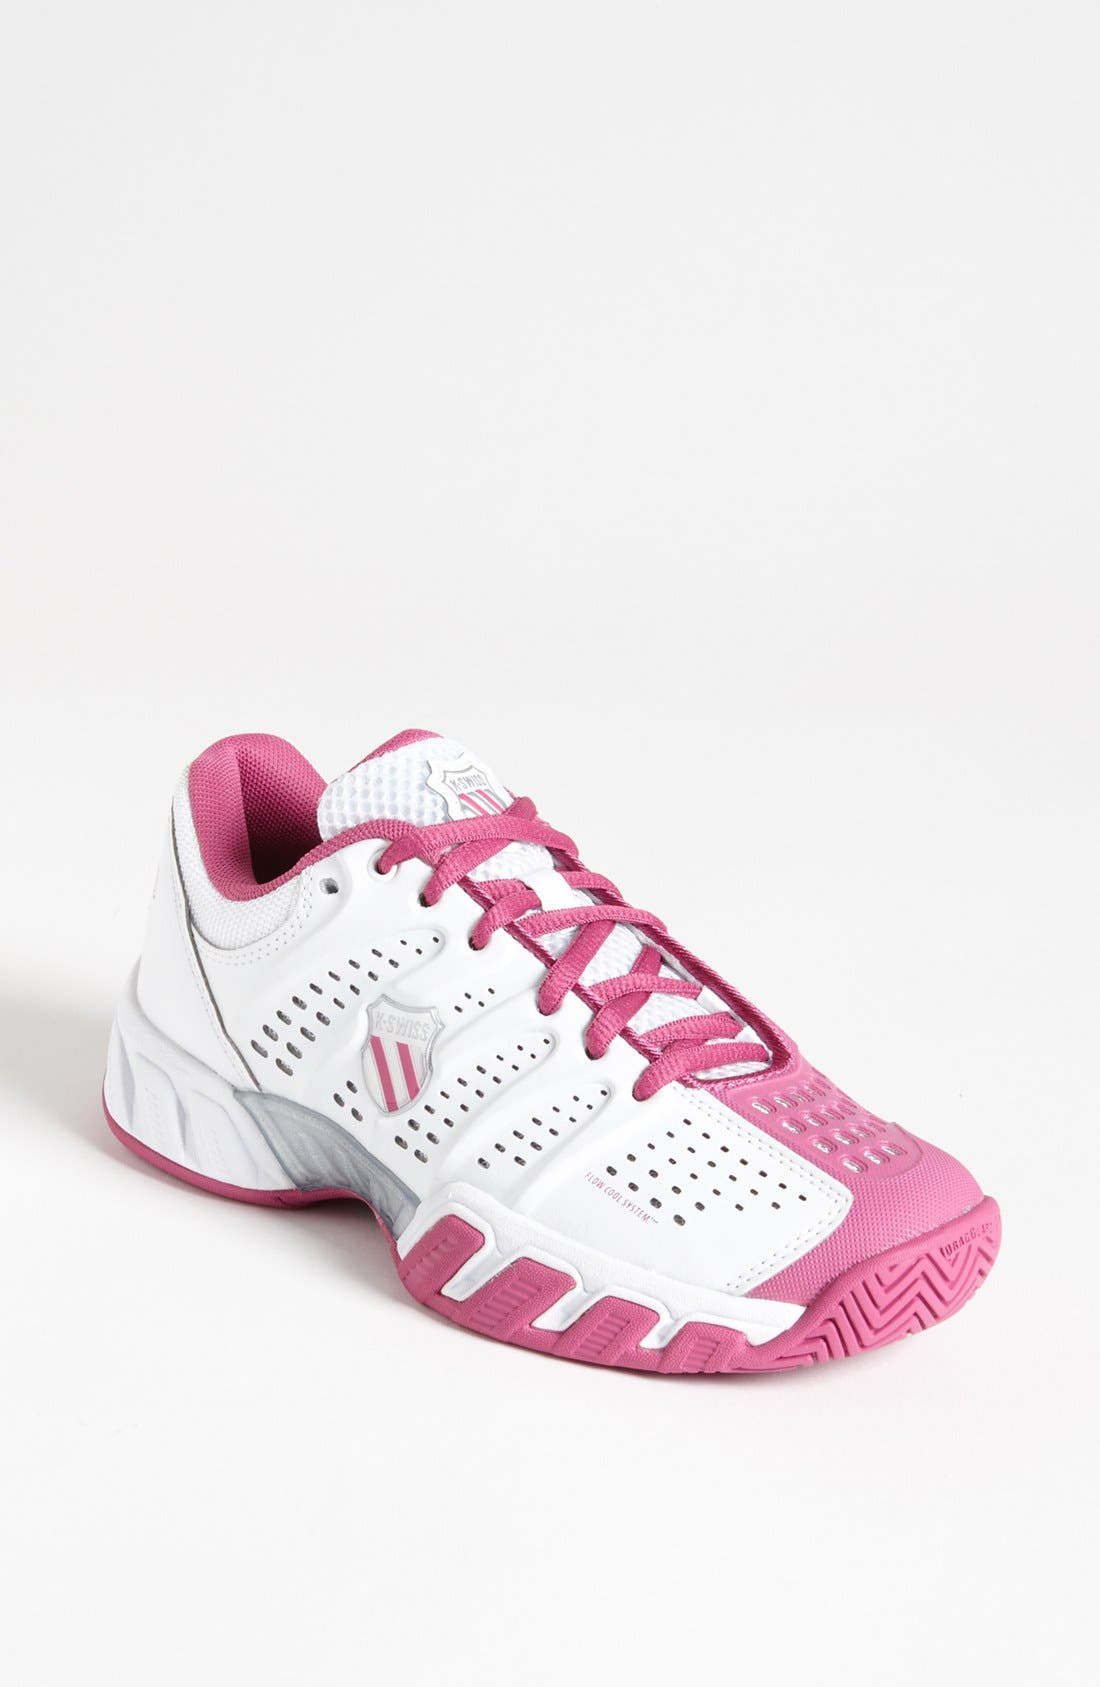 Alternate Image 1 Selected - K-Swiss 'Big Shot Light' Tennis Shoe (Women)